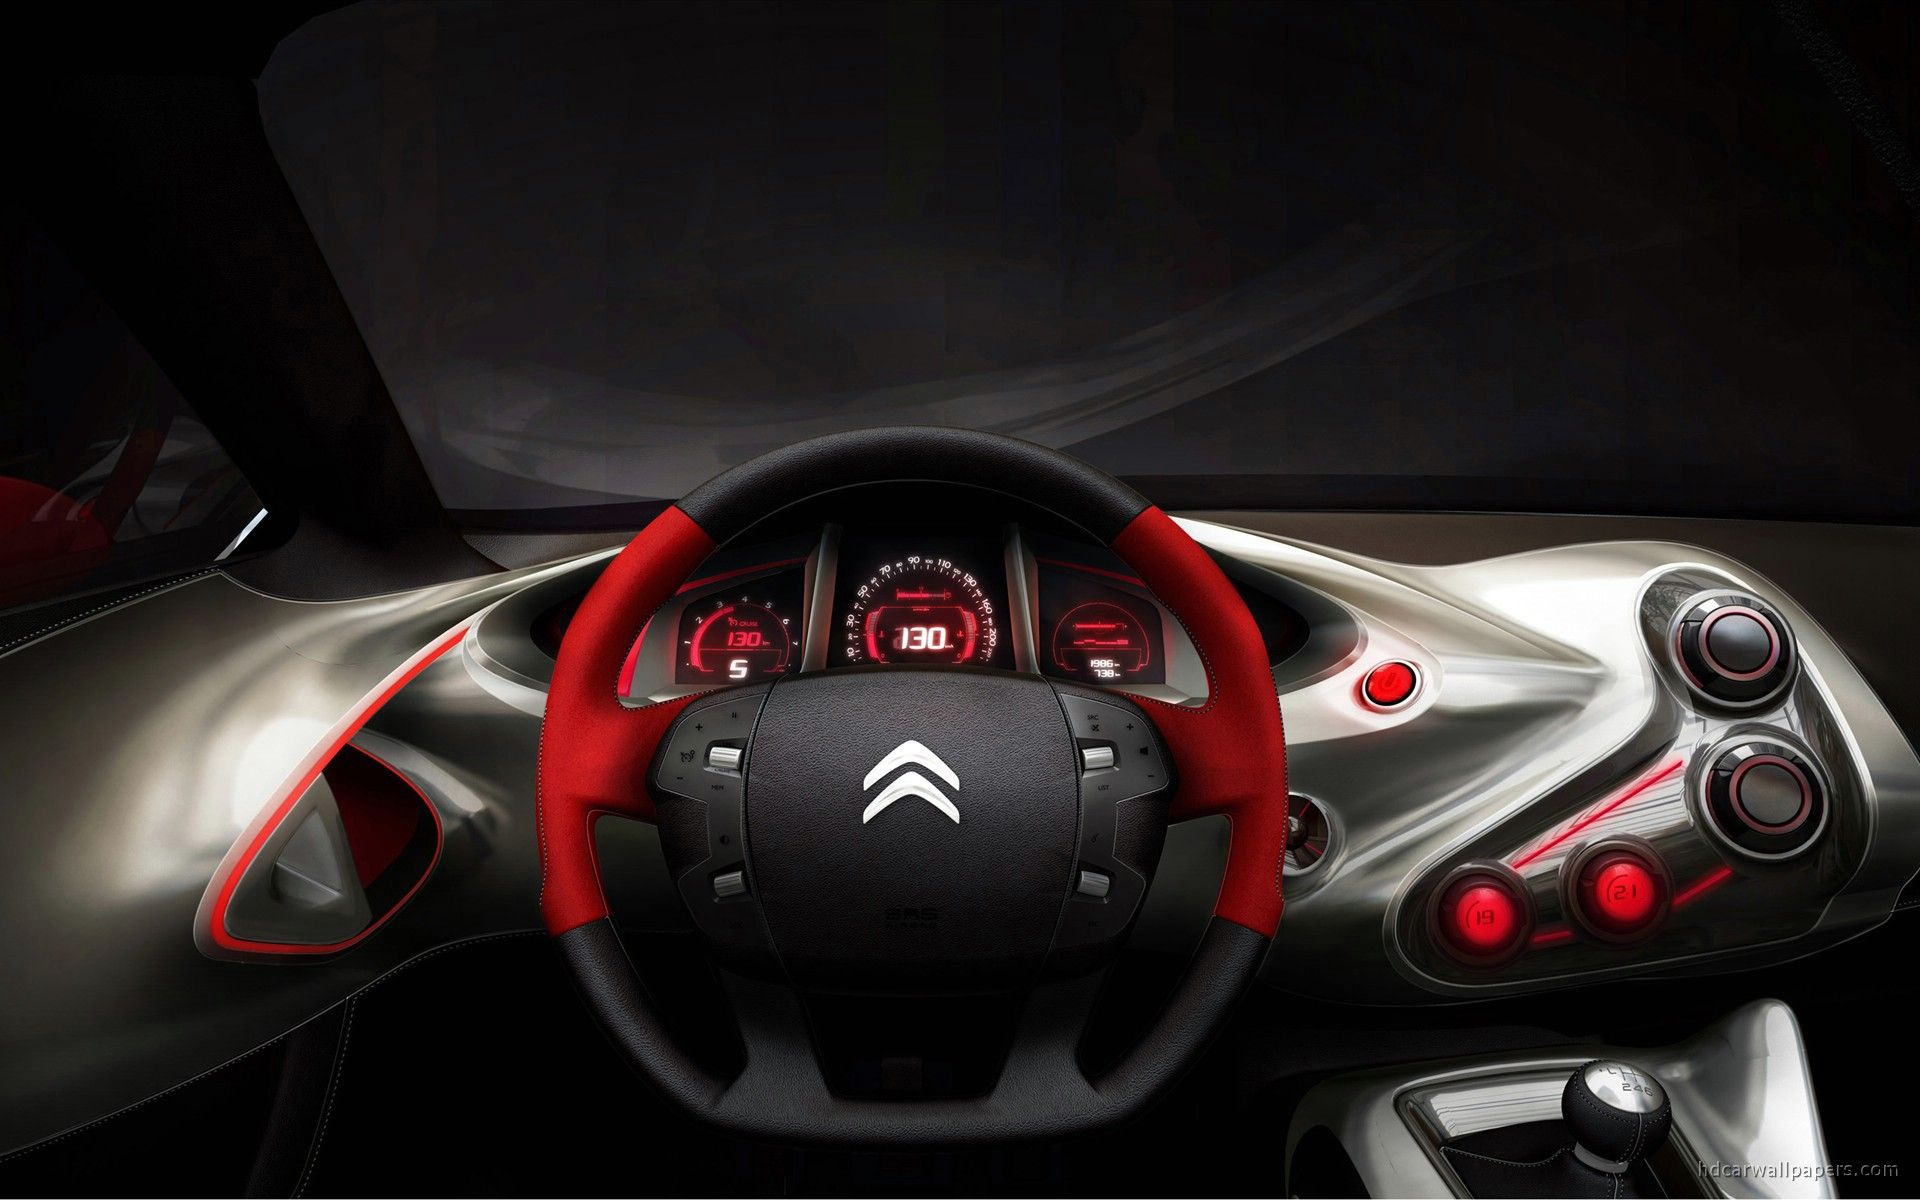 2010 GQbyCITROEN Concept Car Interior Wallpaper | HD Car Wallpapers